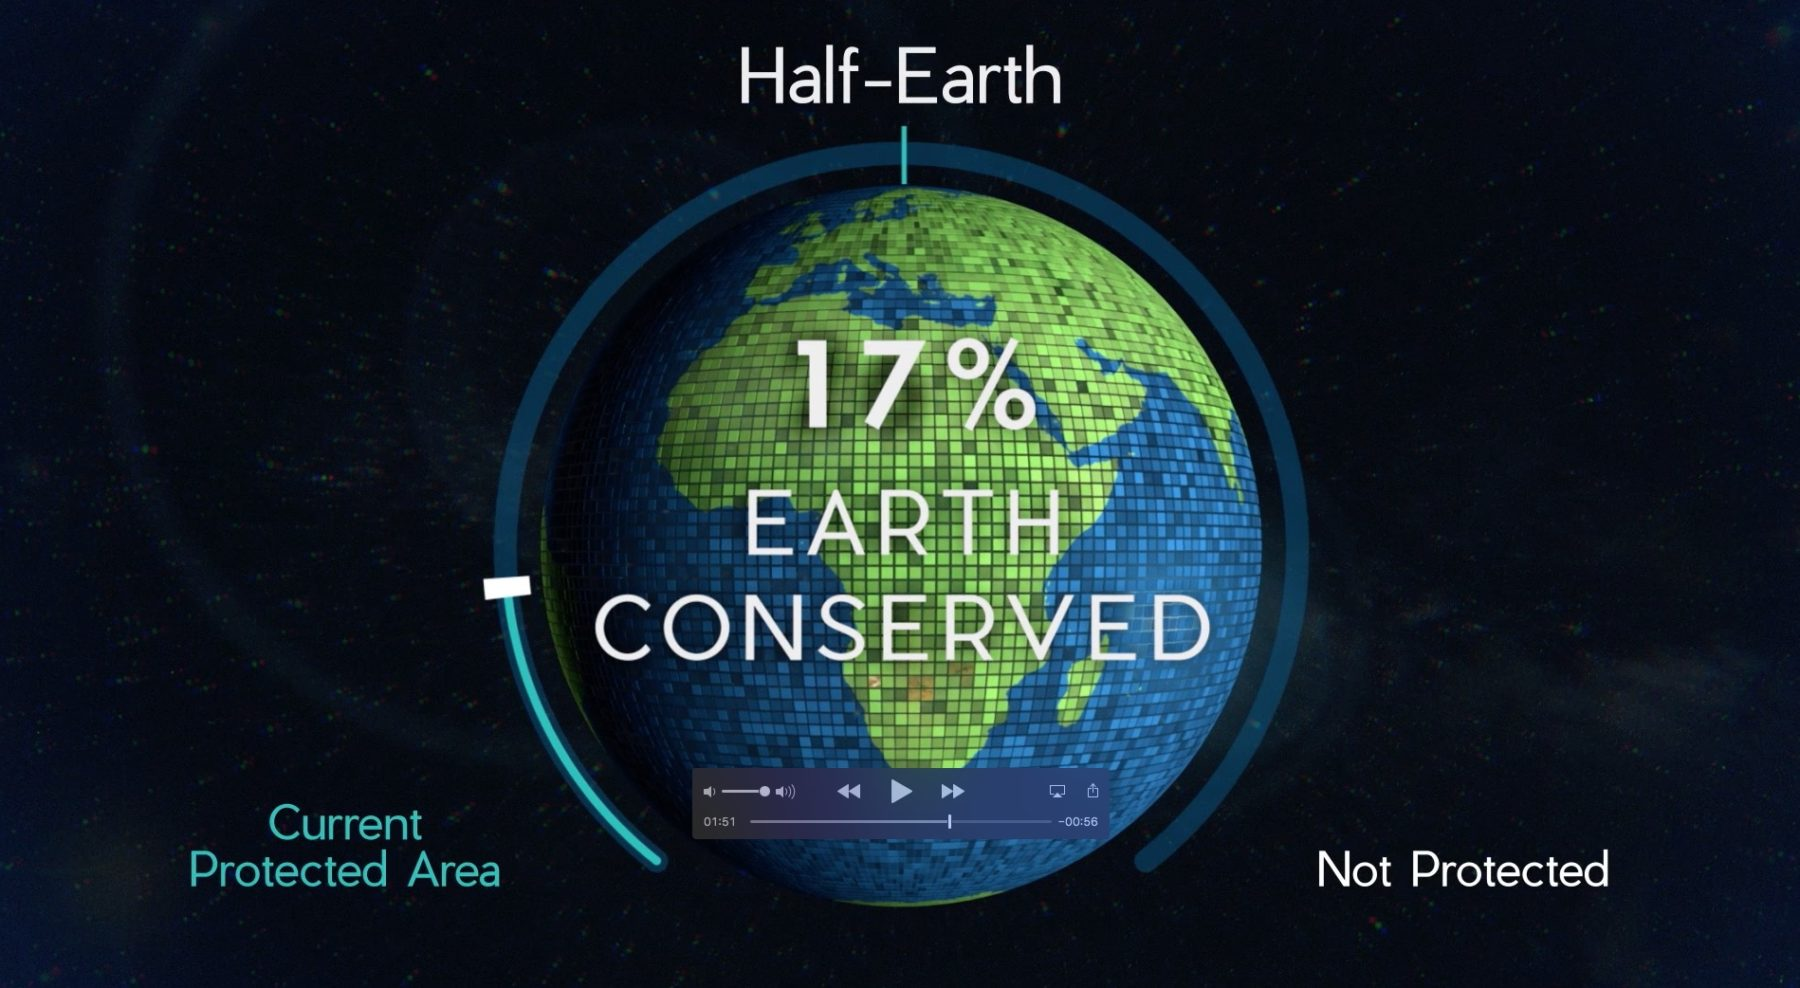 They want to turn half of the globe into nature reserves